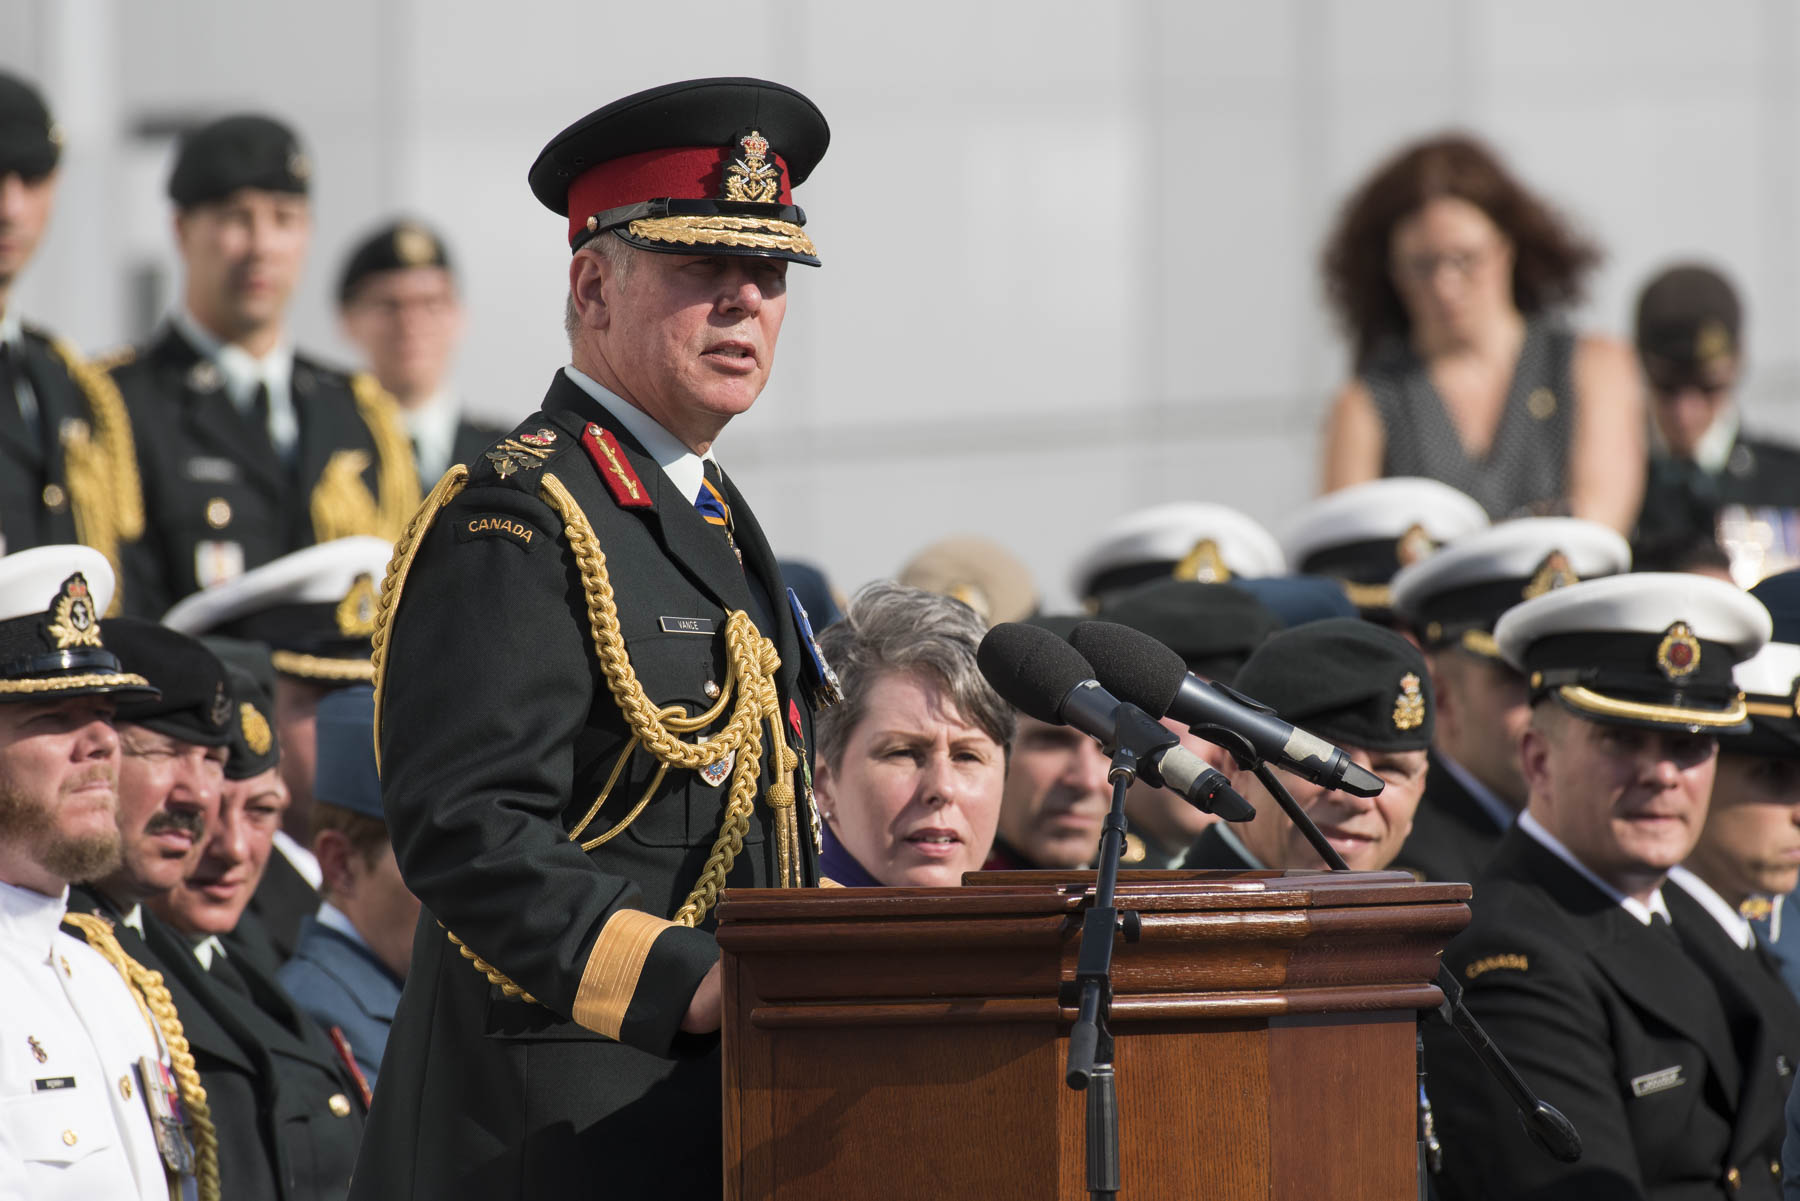 General Jonathan Vance, Chief of the Defence Staff, welcomed those in attendance and invited His Excellency to the podium.